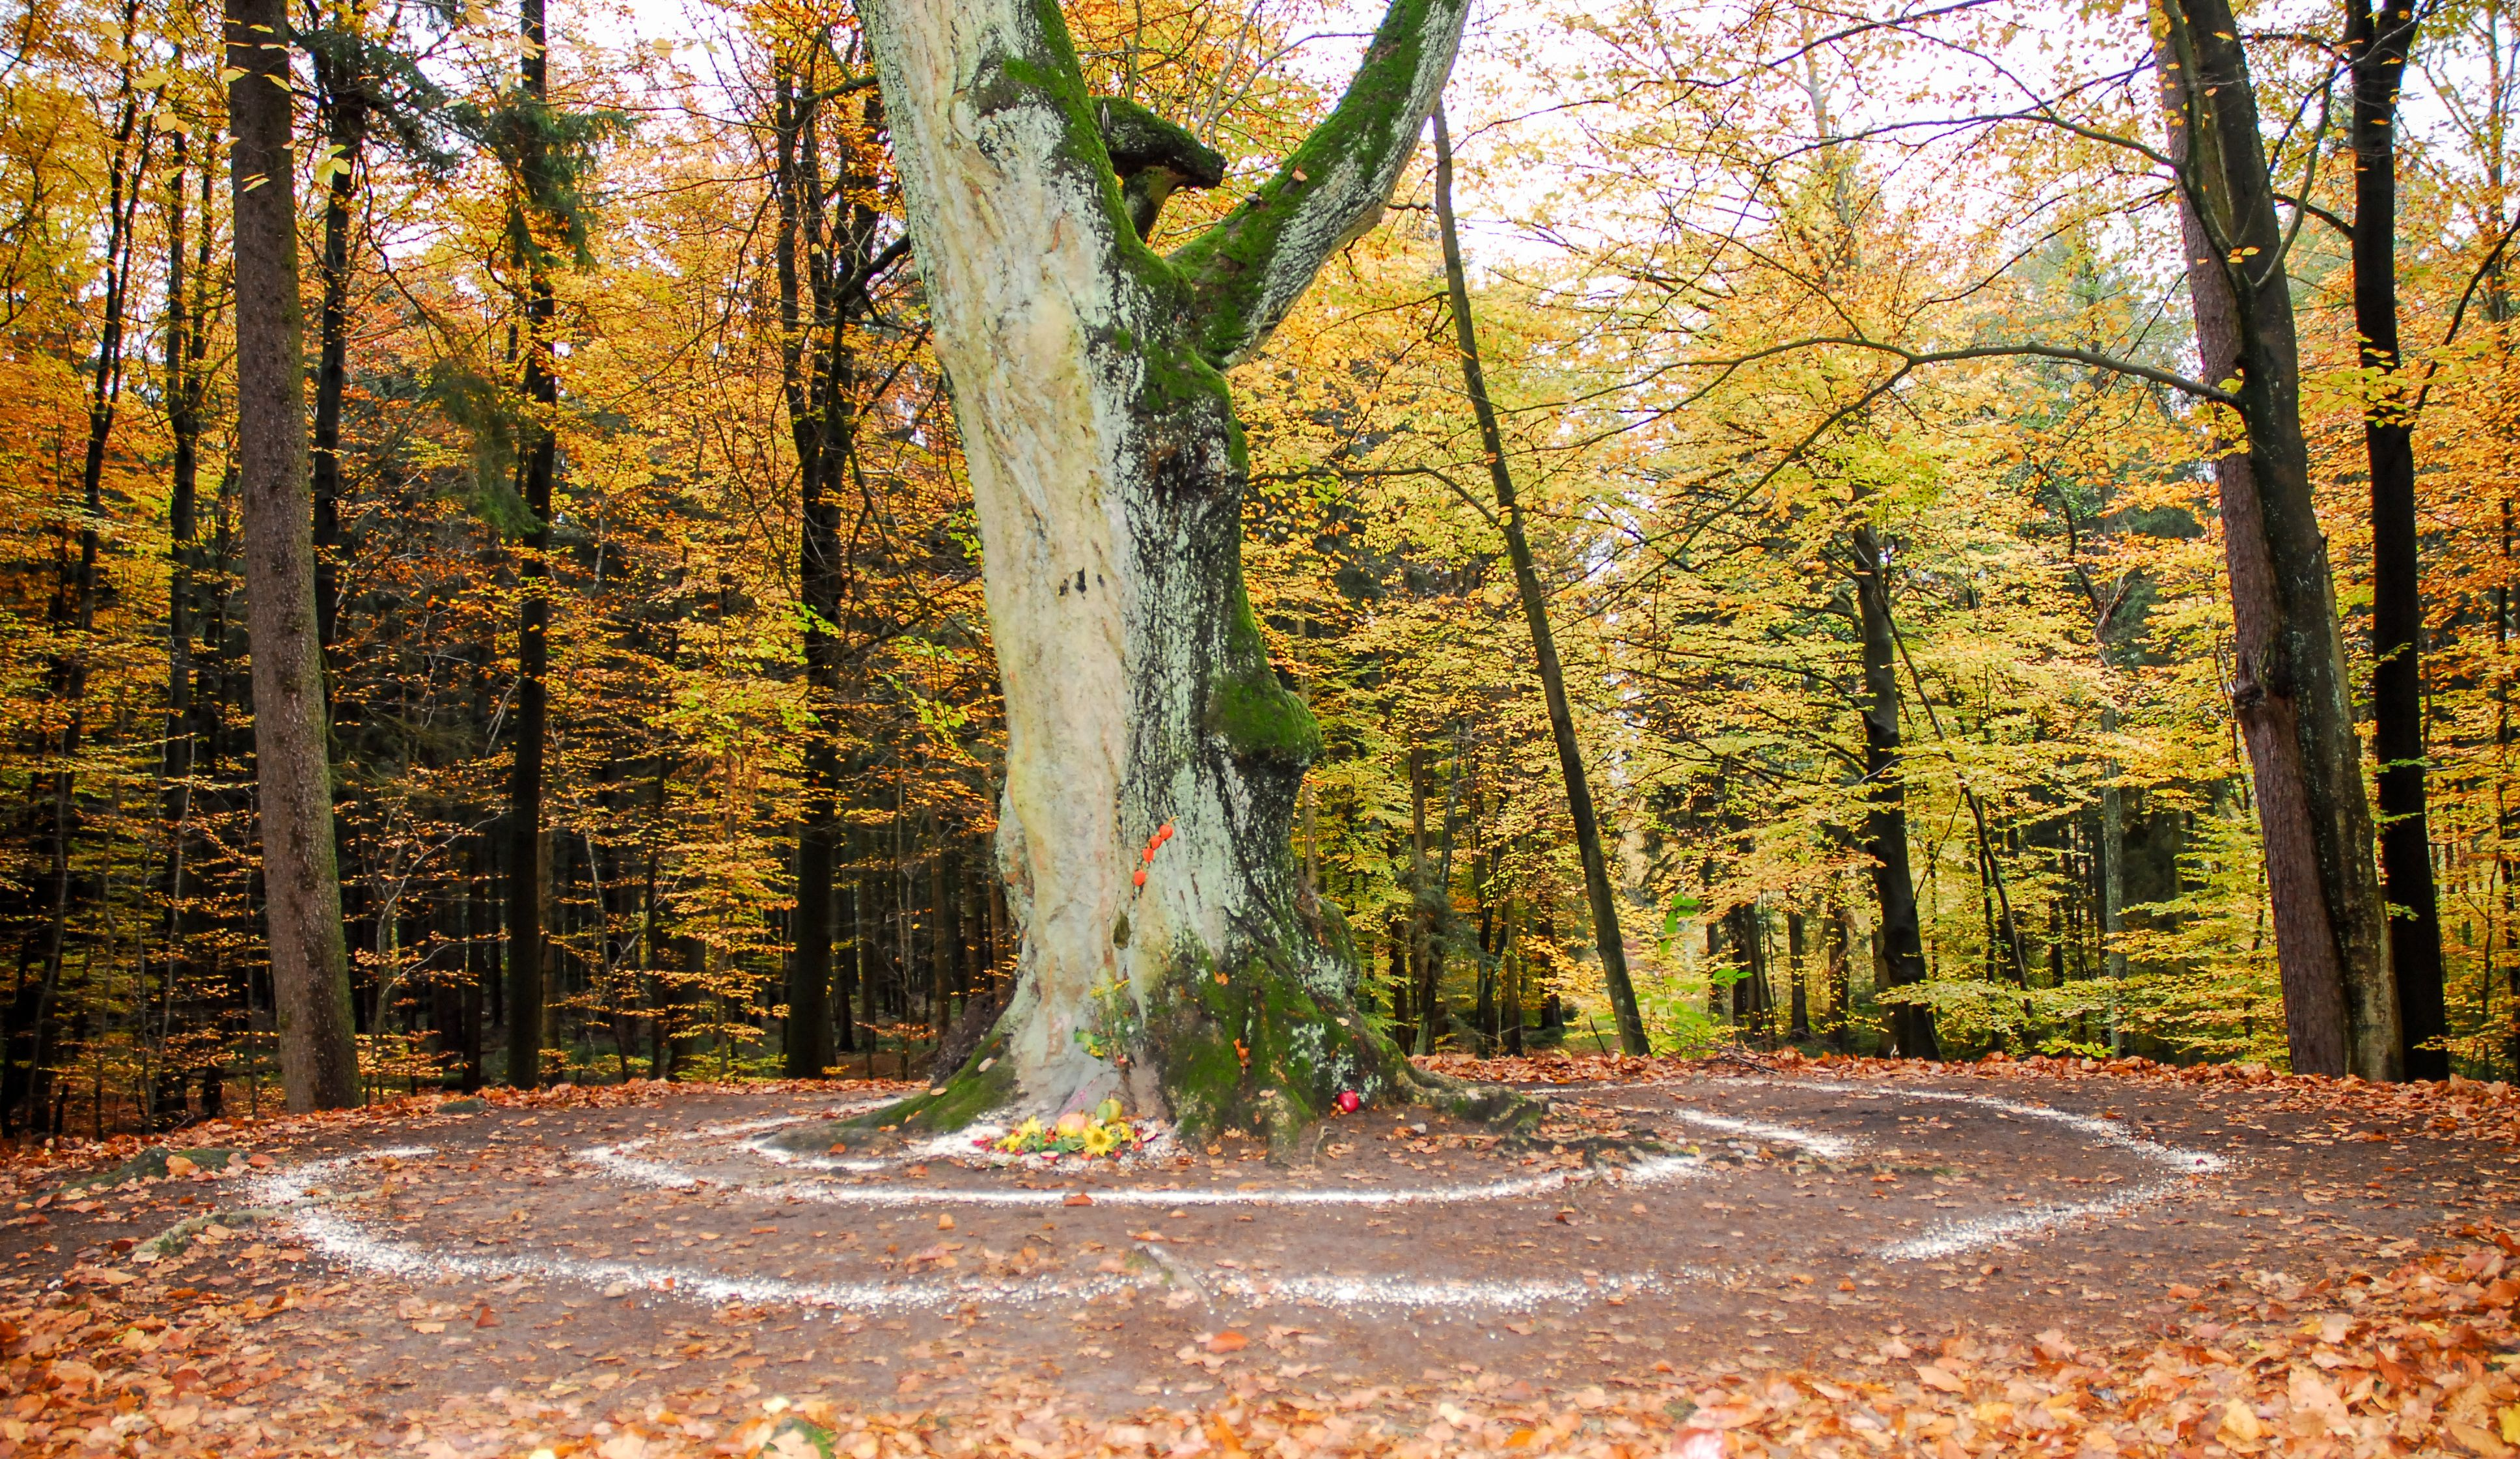 Pagan altar and spiral works outside next to a tree. Wicca and witchcraft.